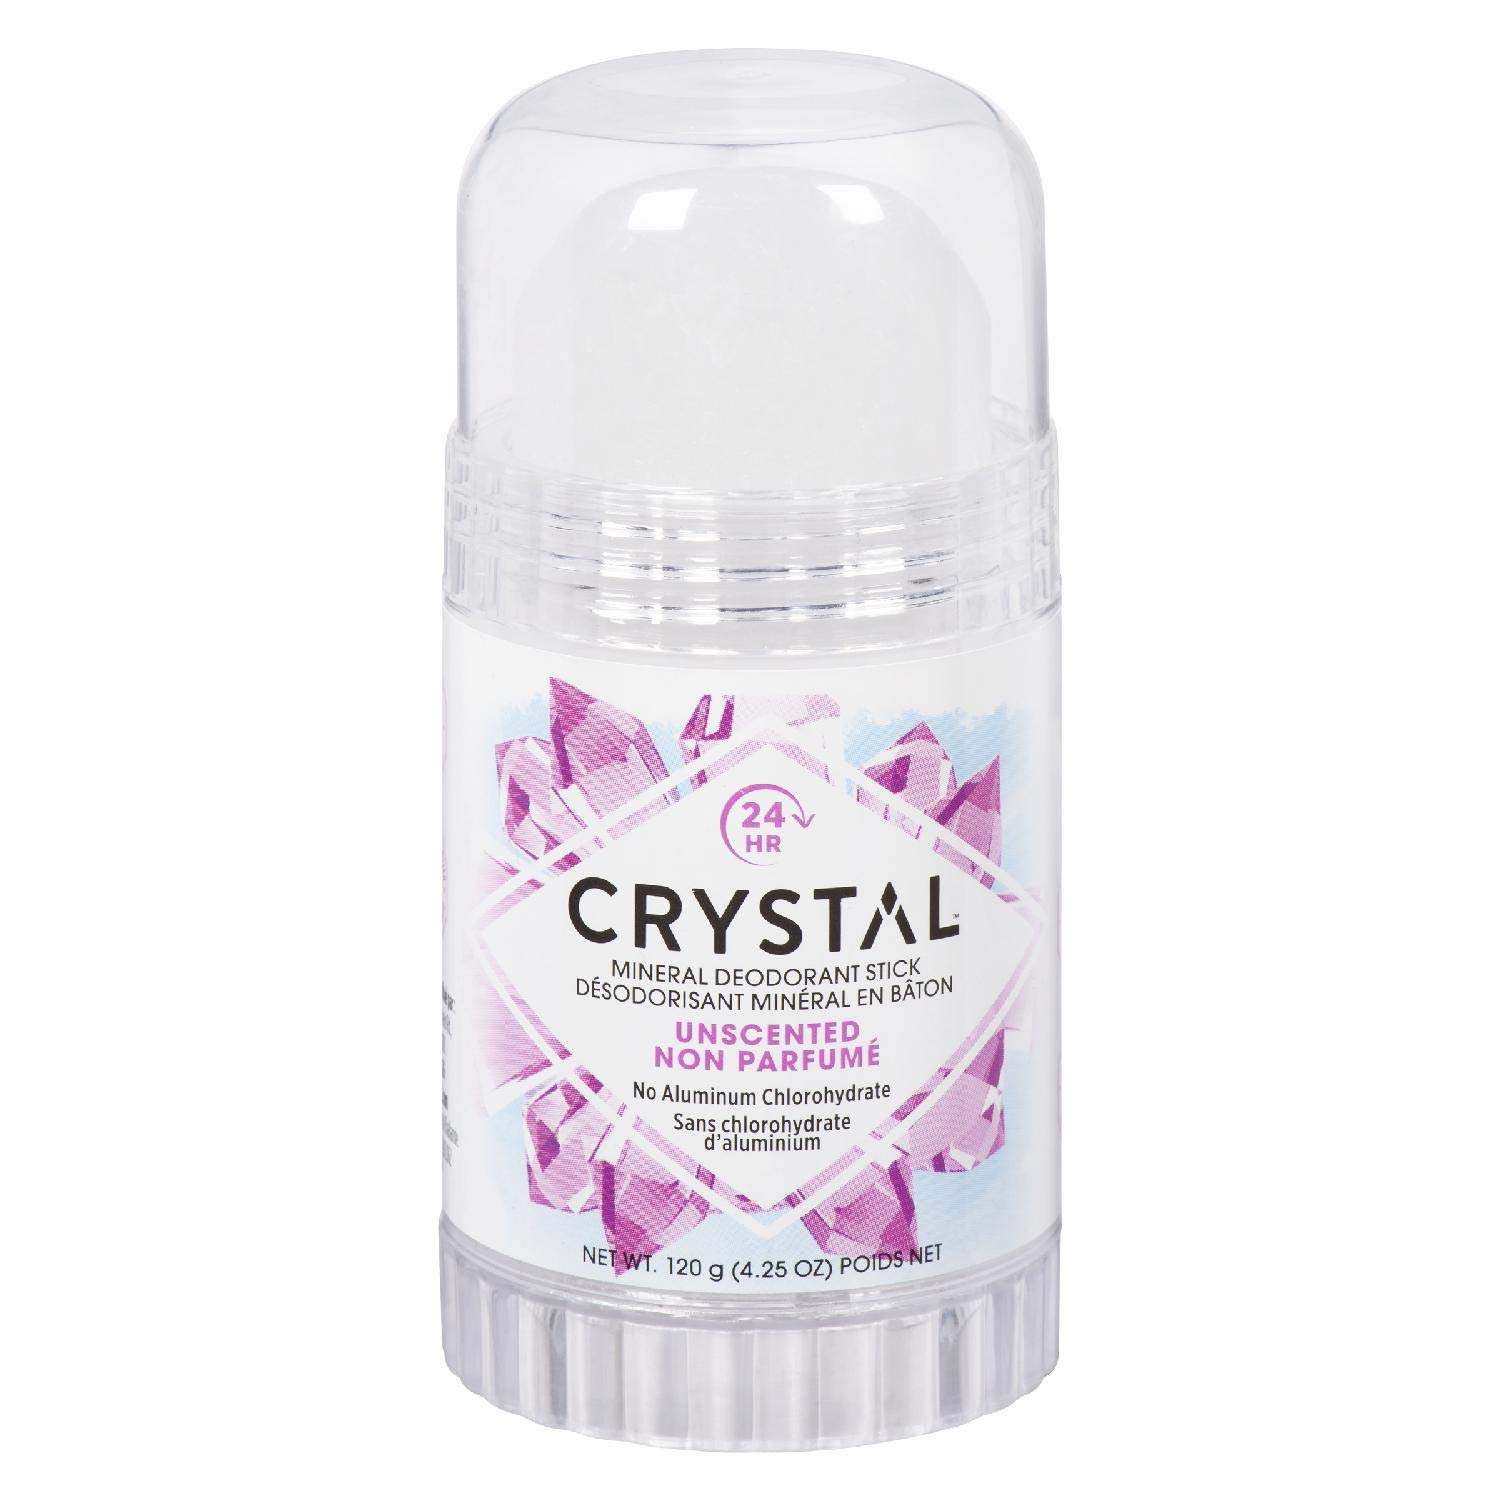 Crystal Mineral Deodorant Stick, Unscented, 4.25 oz